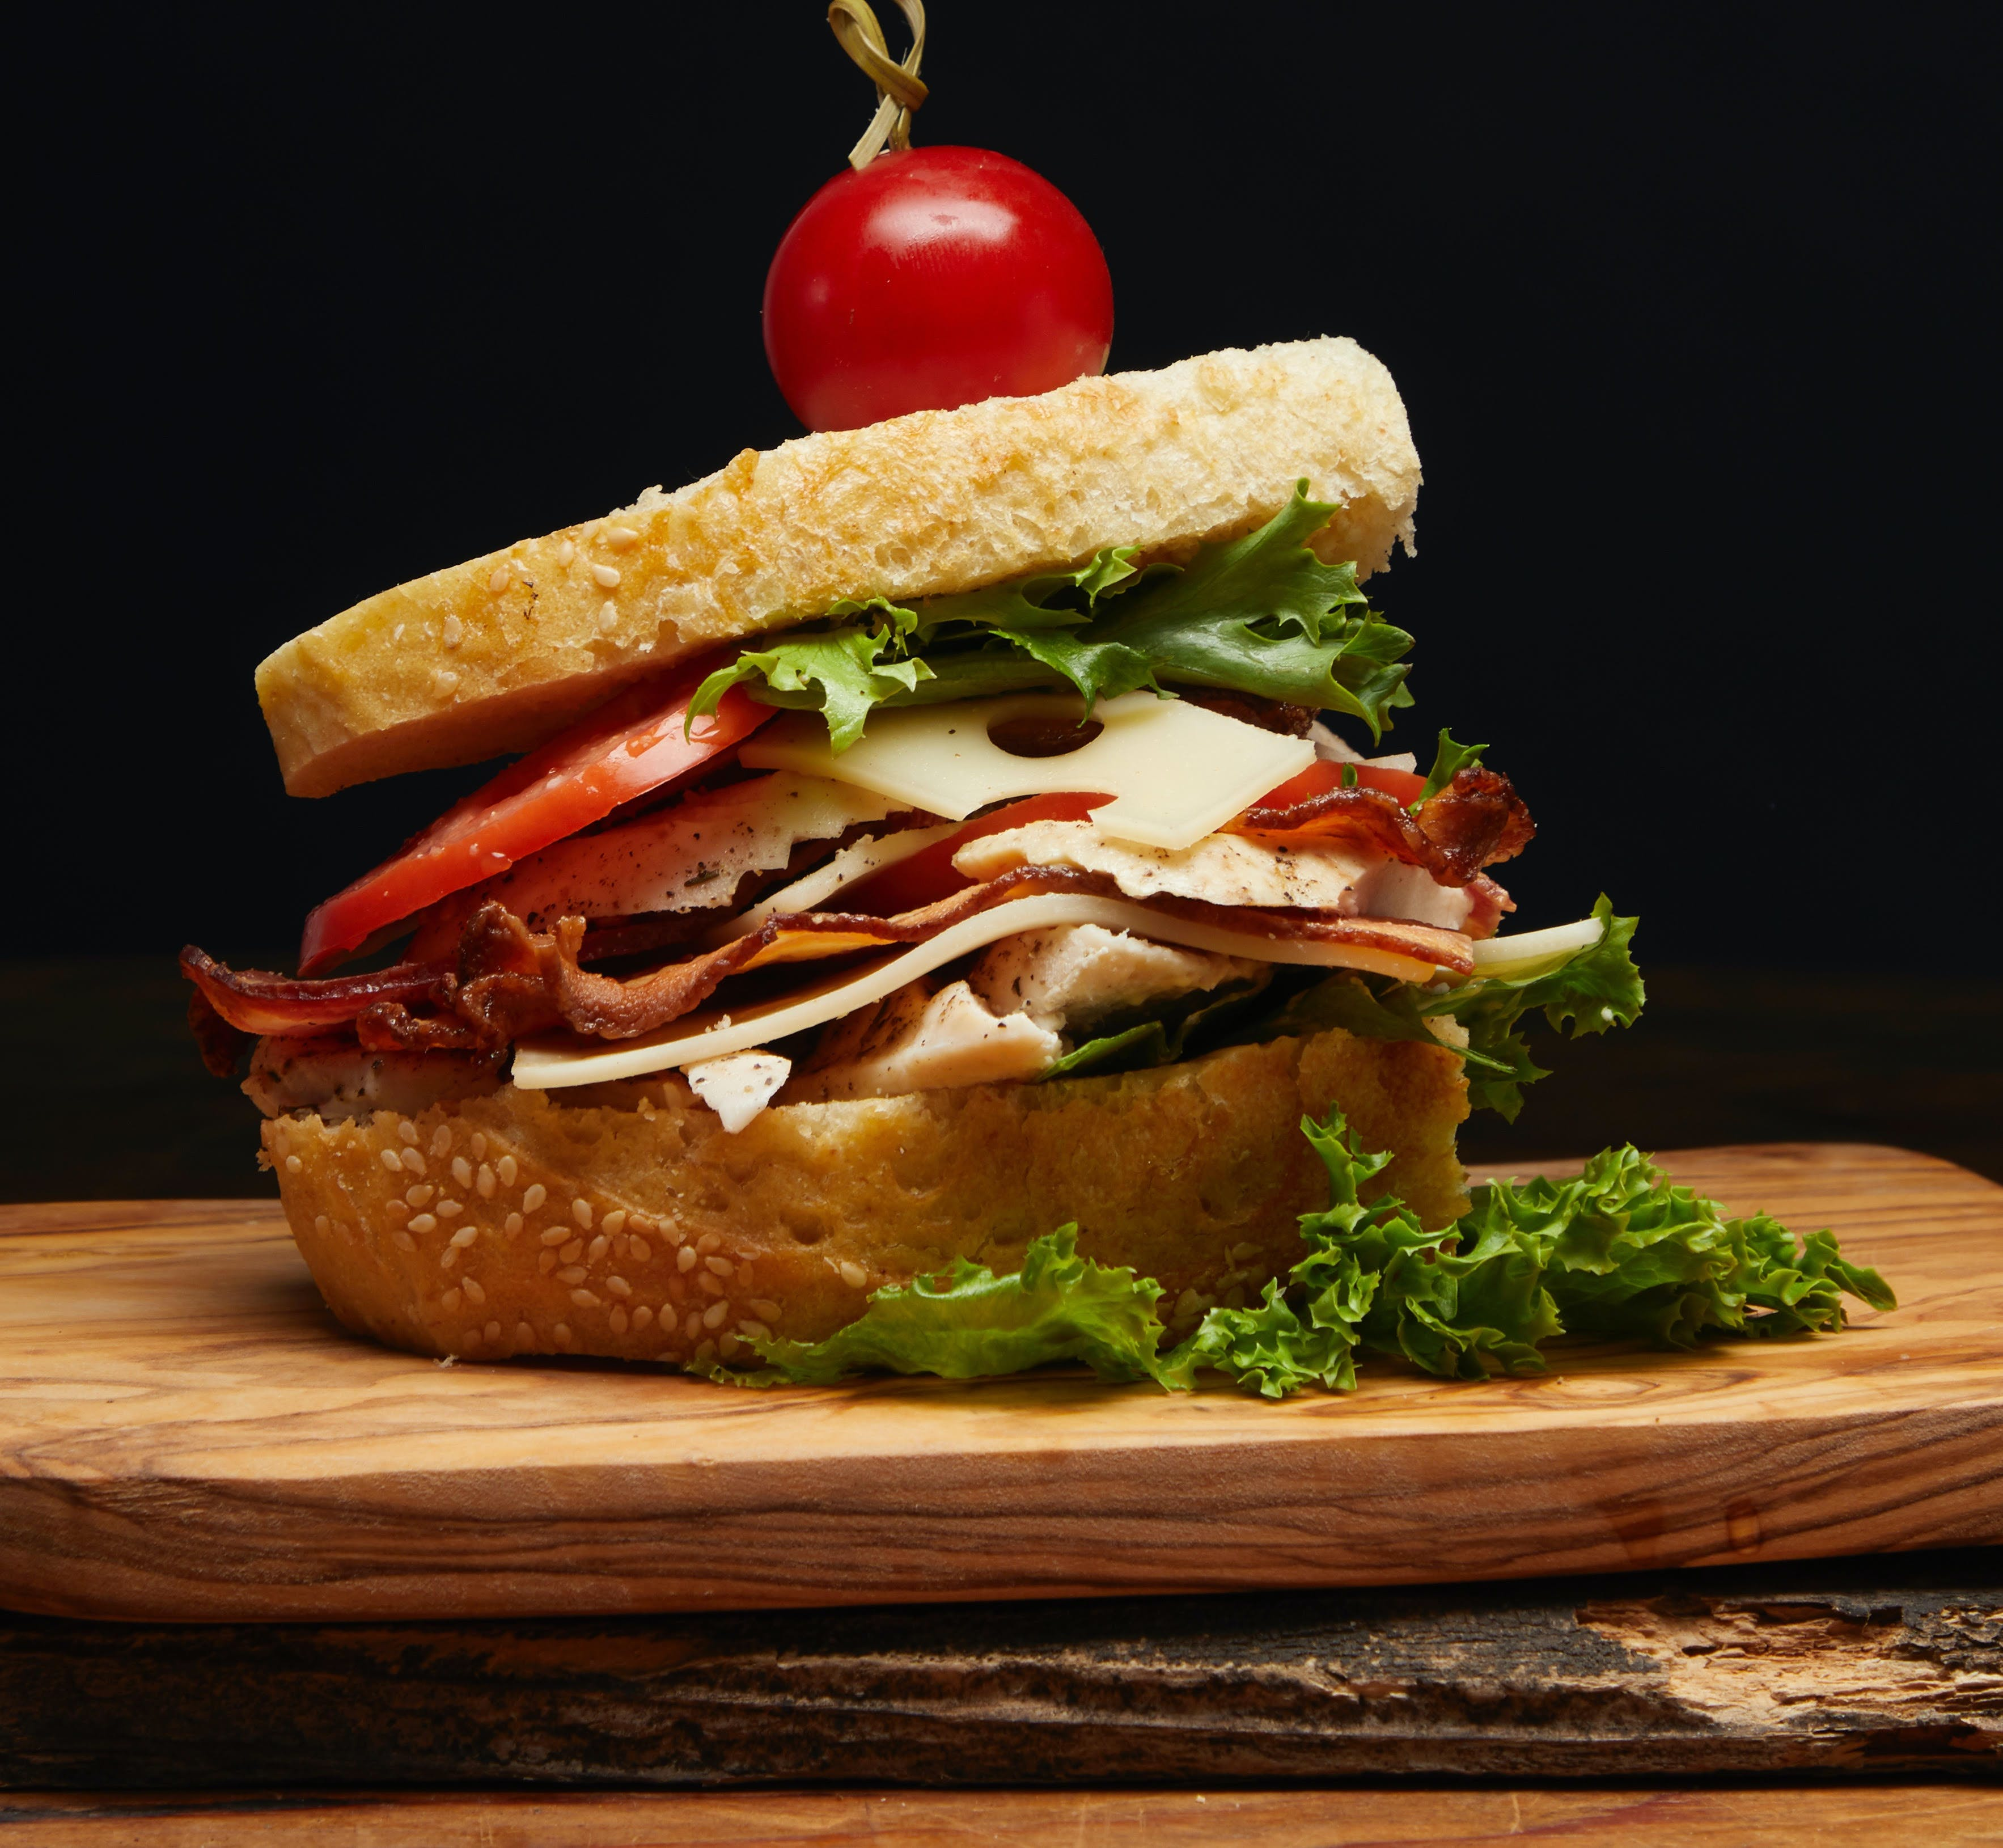 Flavorsome Fowl from Fromagination in Madison, WI